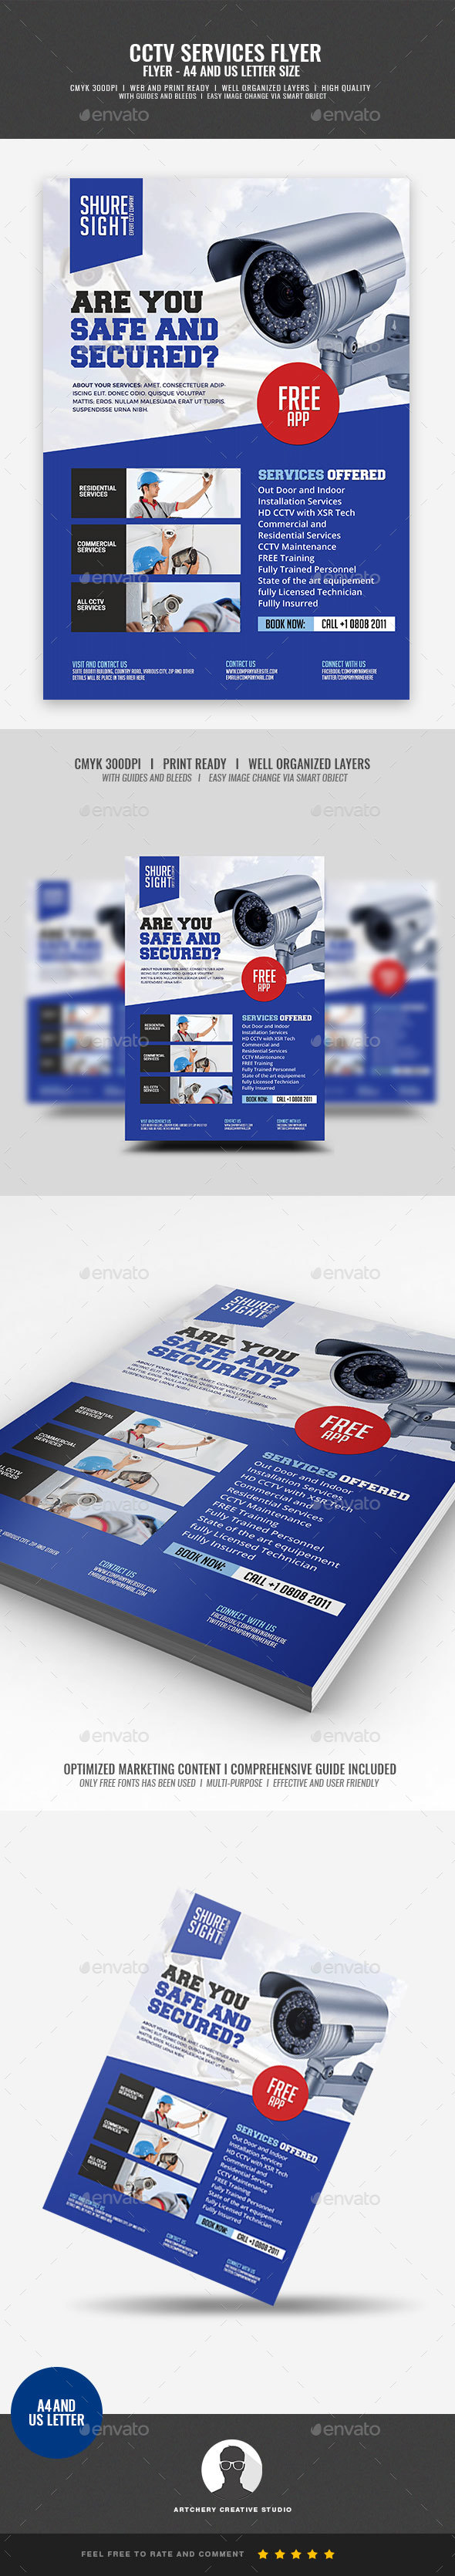 CCTV Shop and Installation Service Flyer - Corporate Flyers